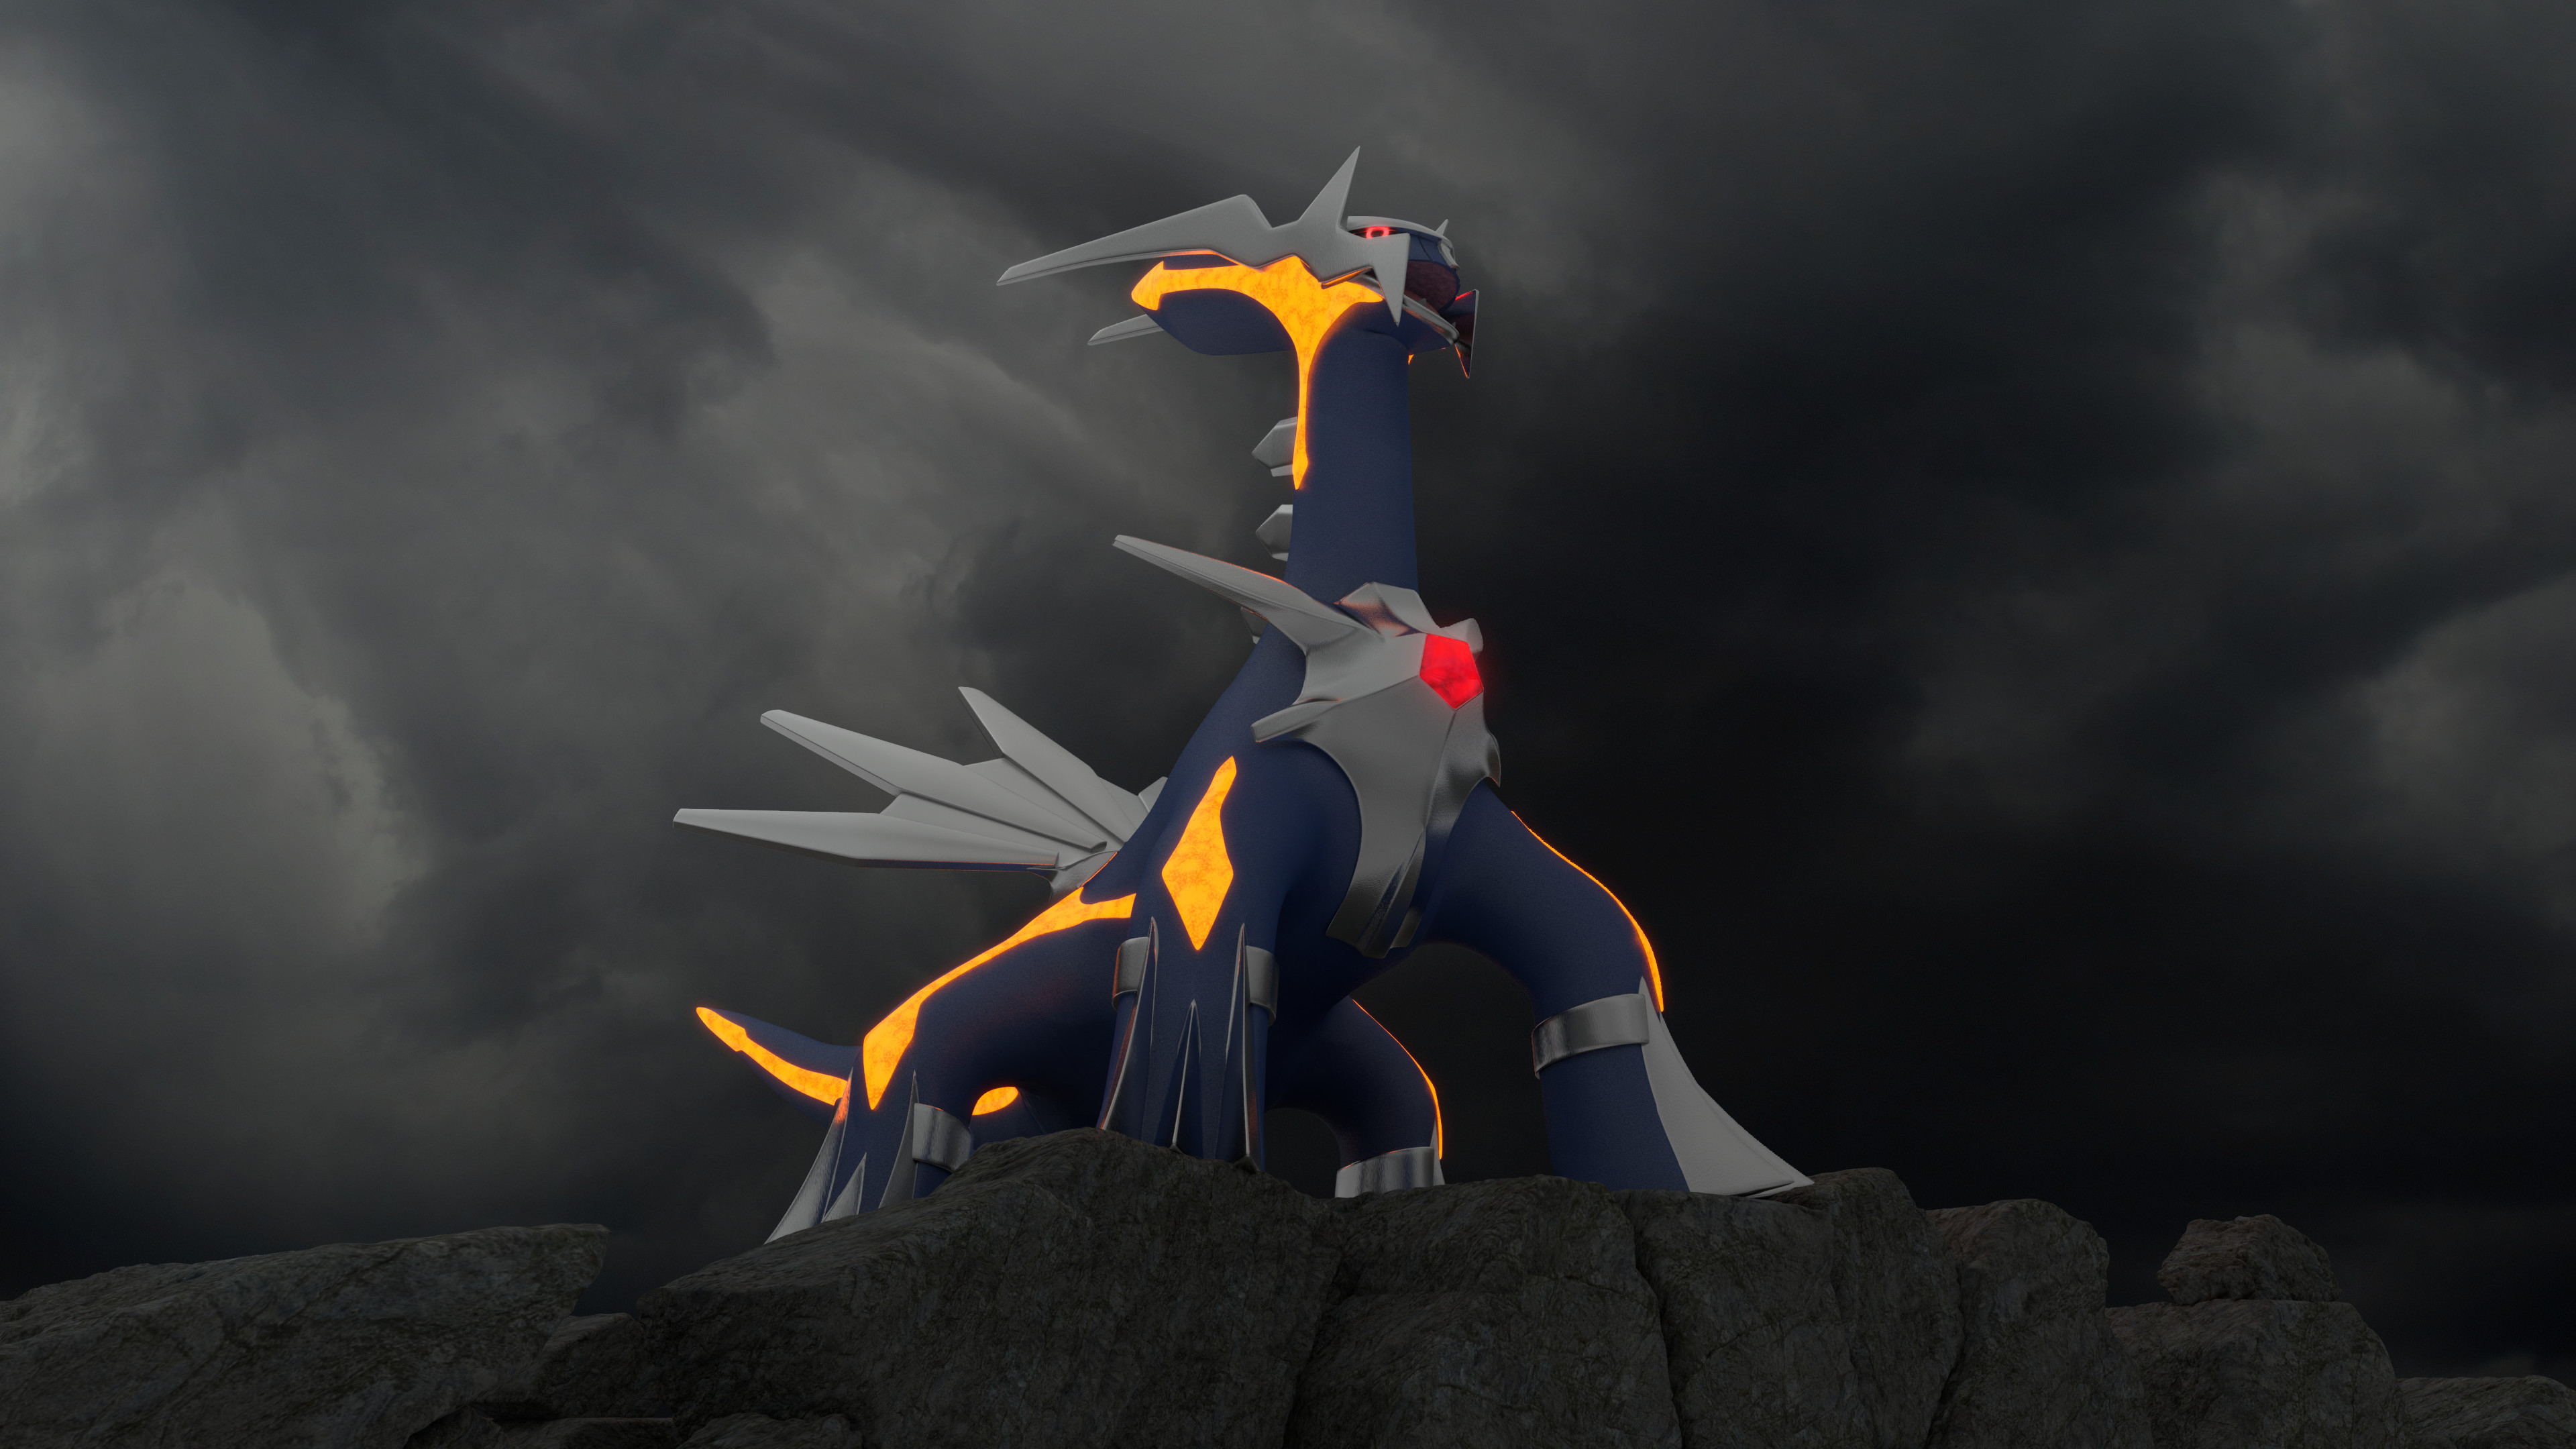 3840x2160 The original Primal: Dialga